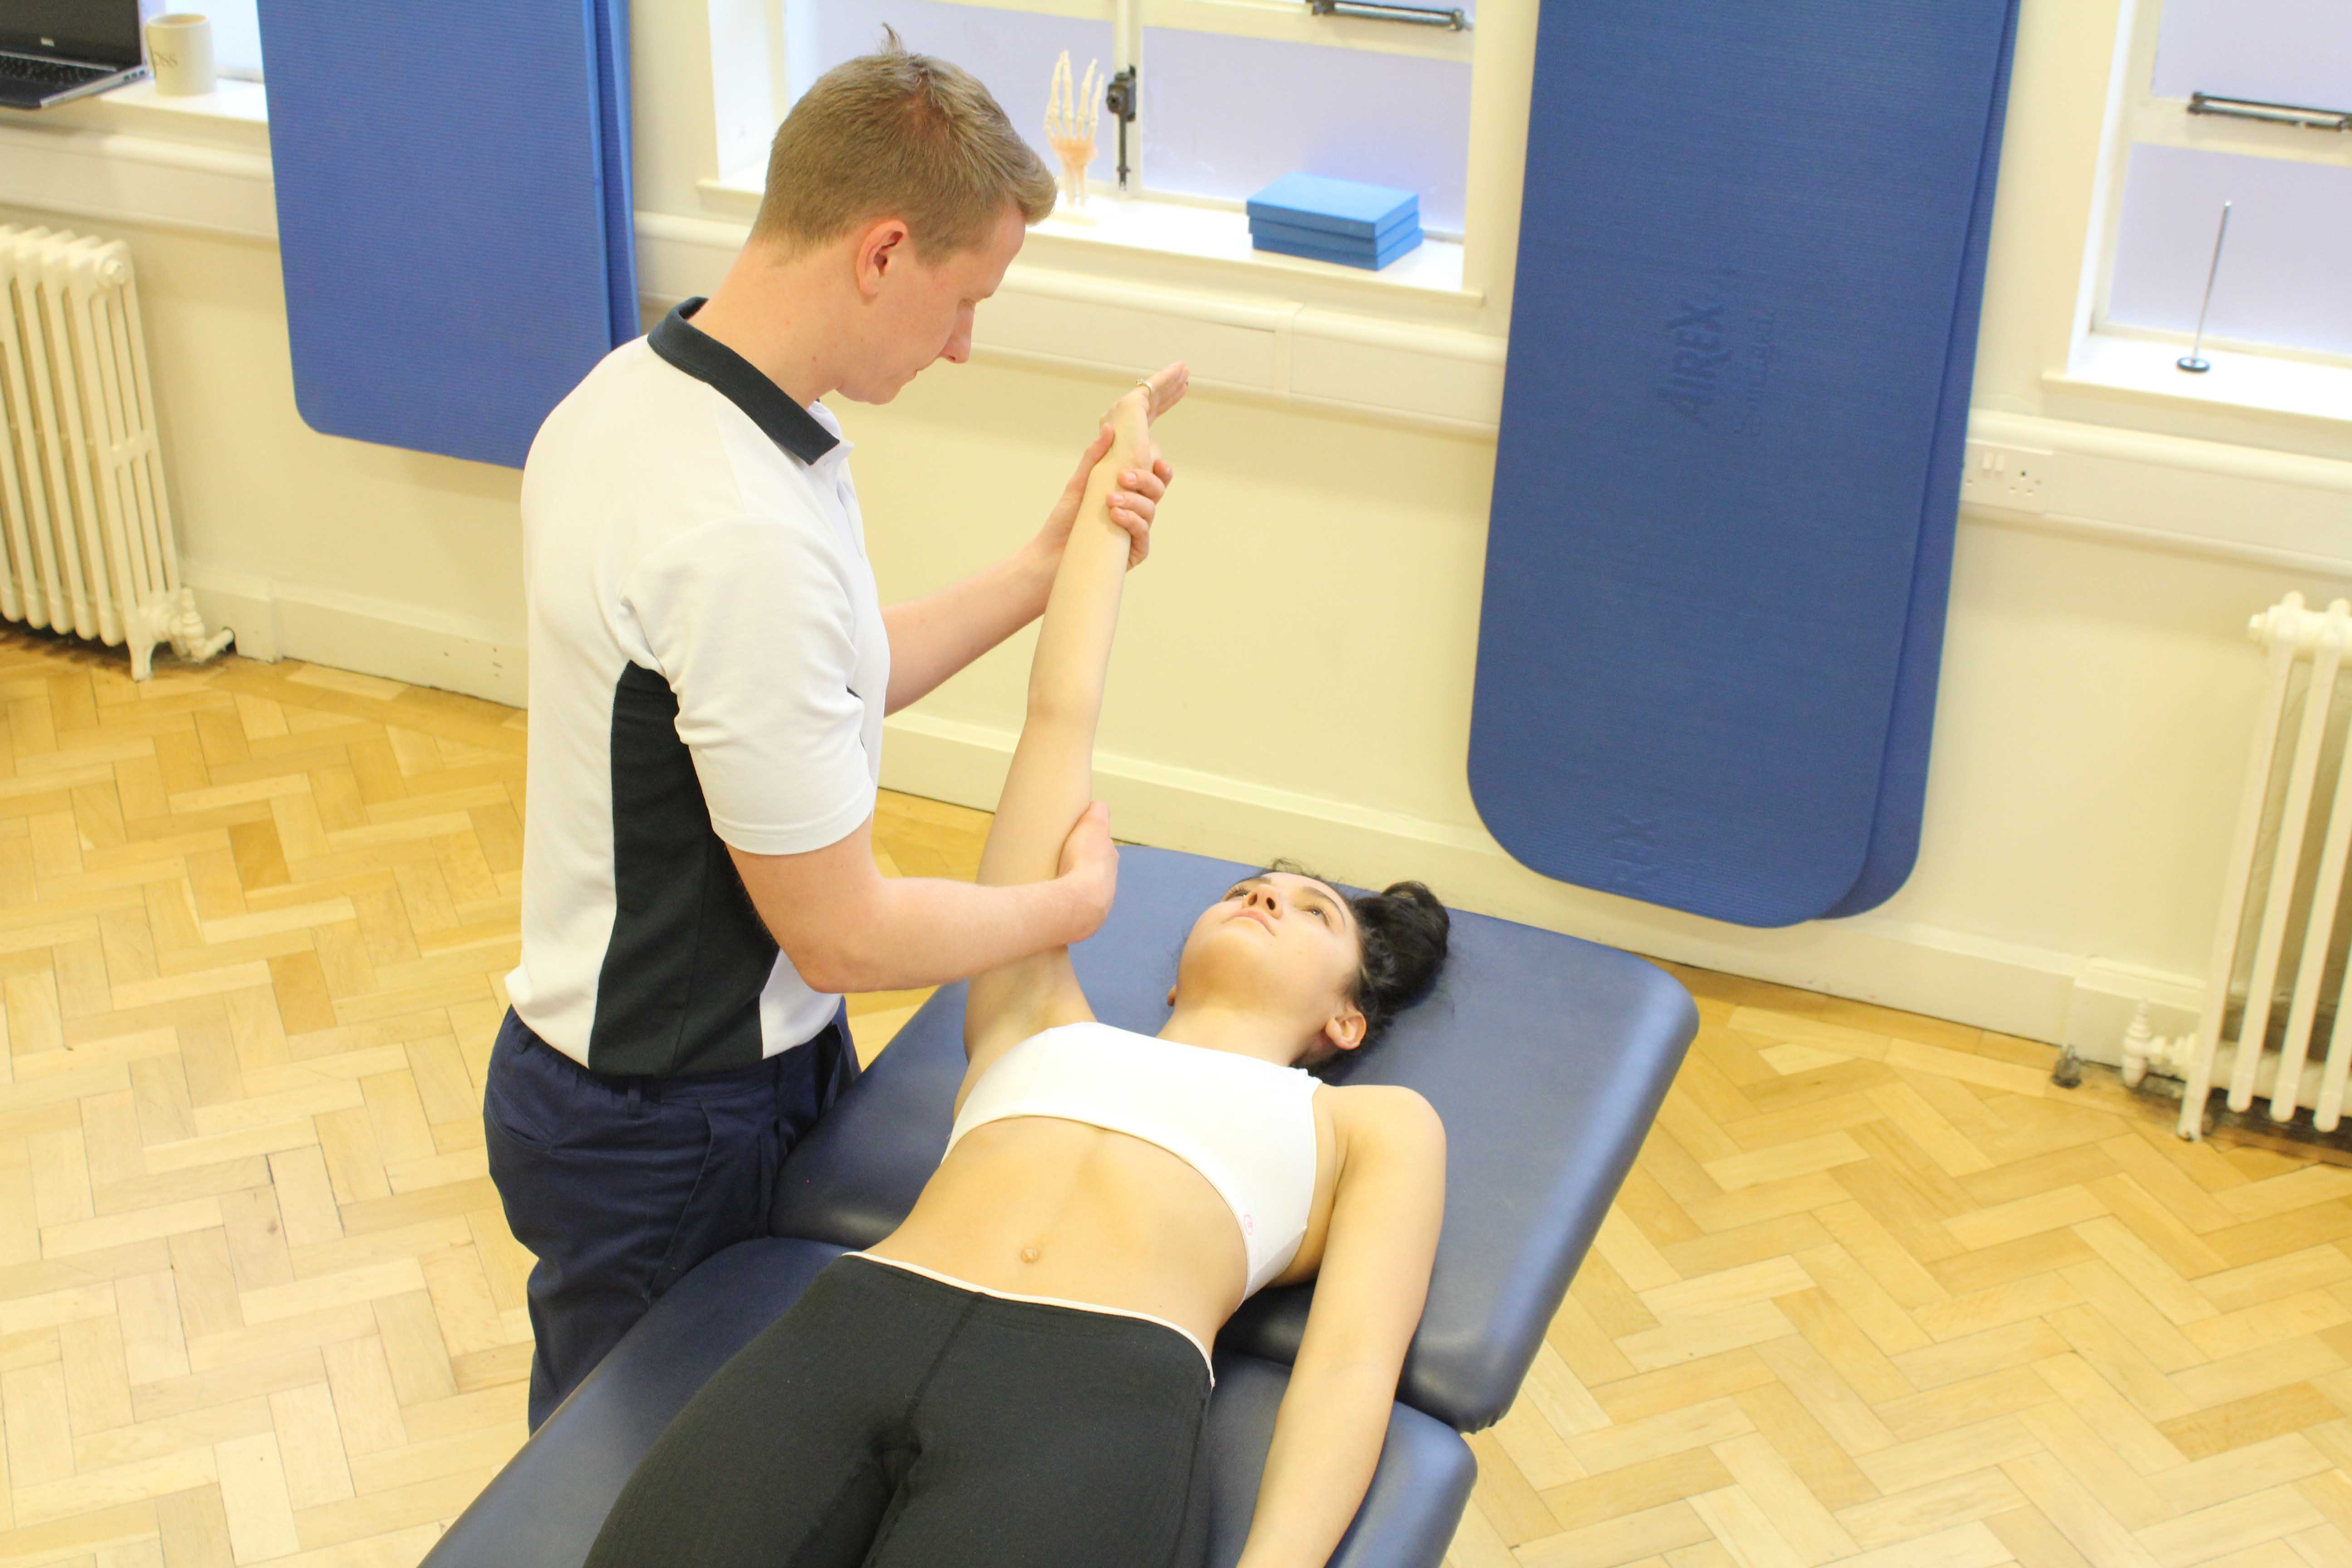 Experienced musculoskeletal physiotherapist assessing a limitation in shoulder movement